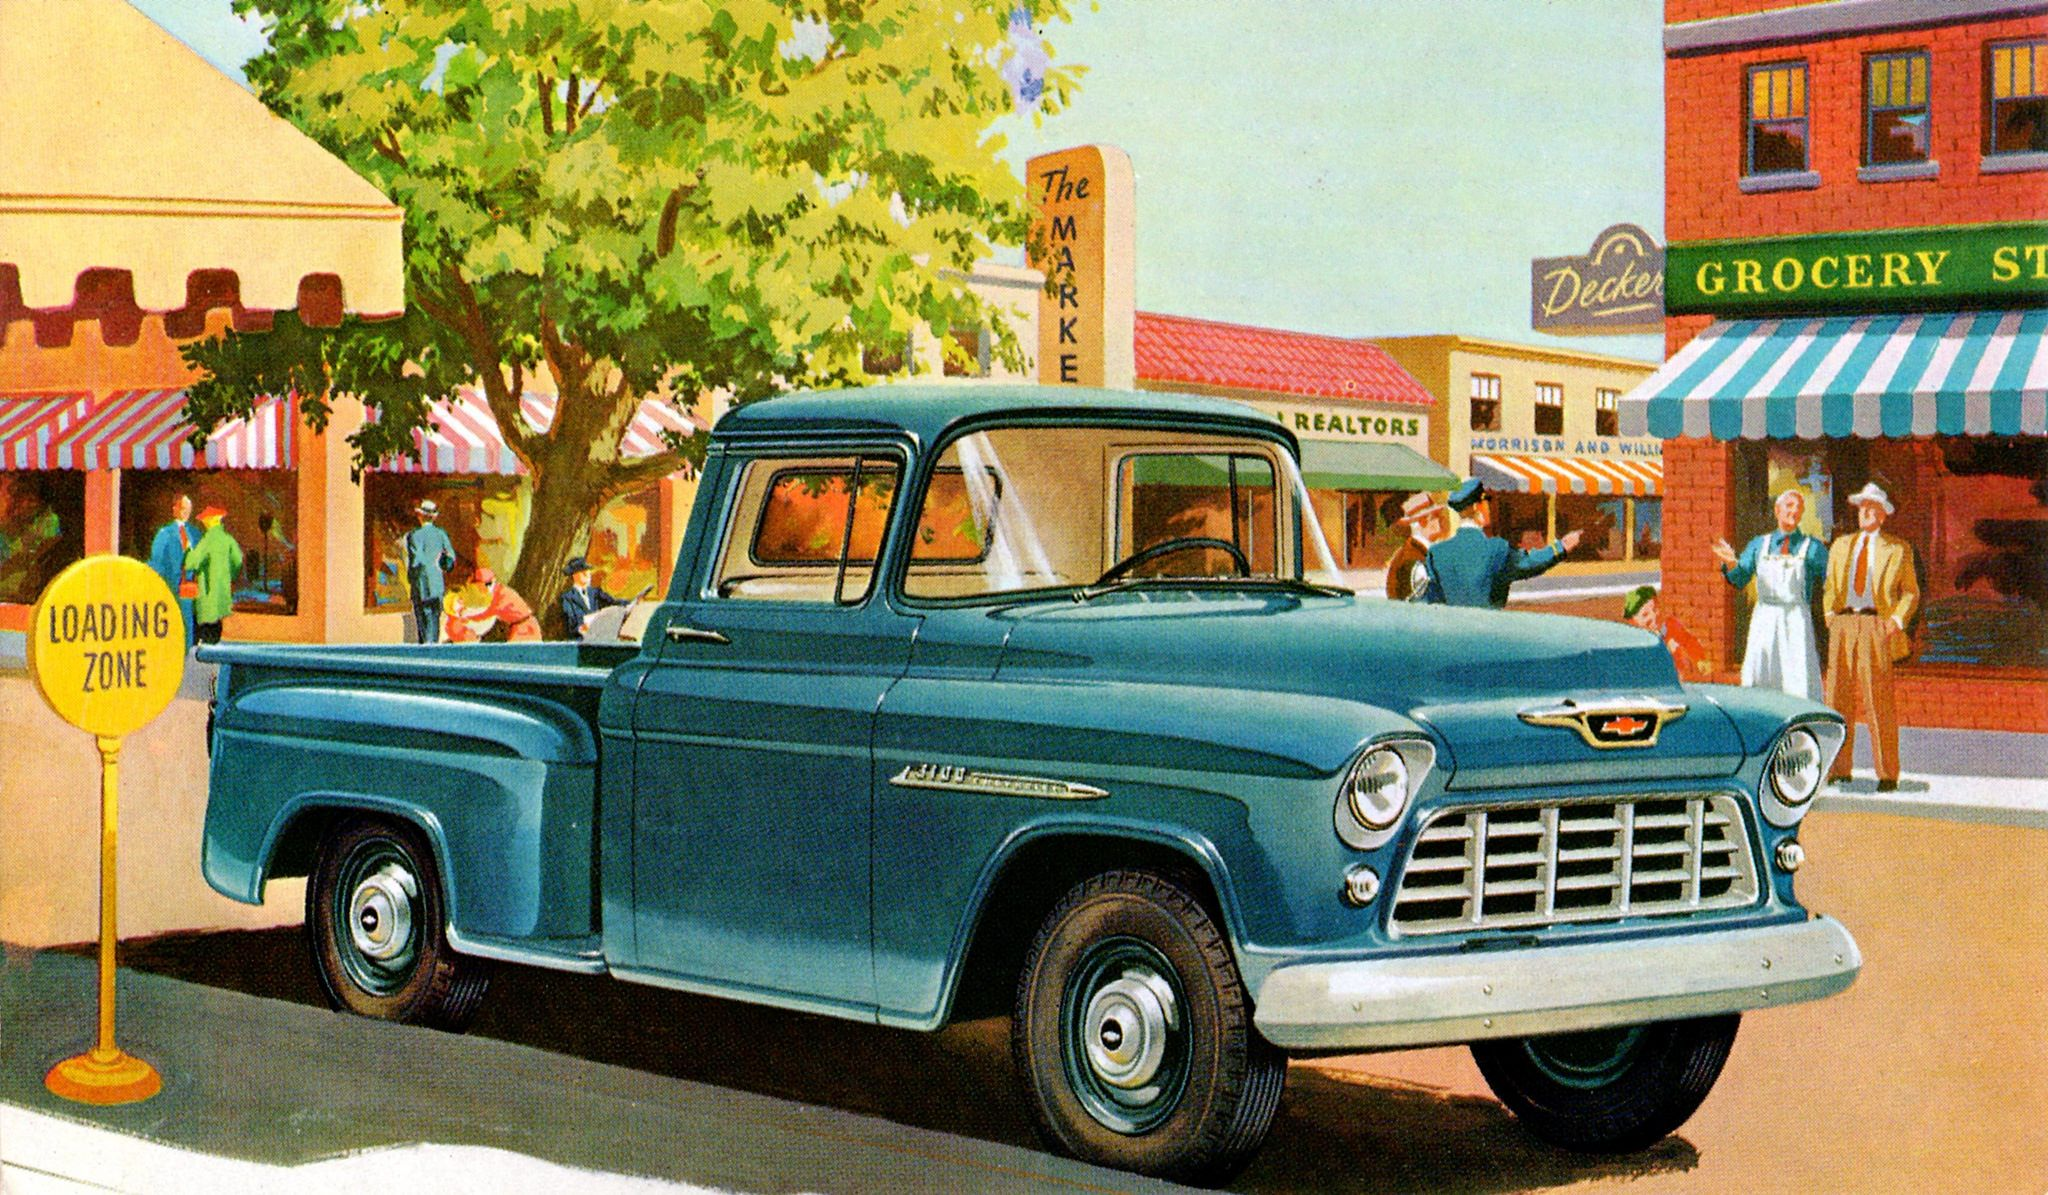 1955 Chevrolet Model 3104 Pickup With Images Vintage Chevy